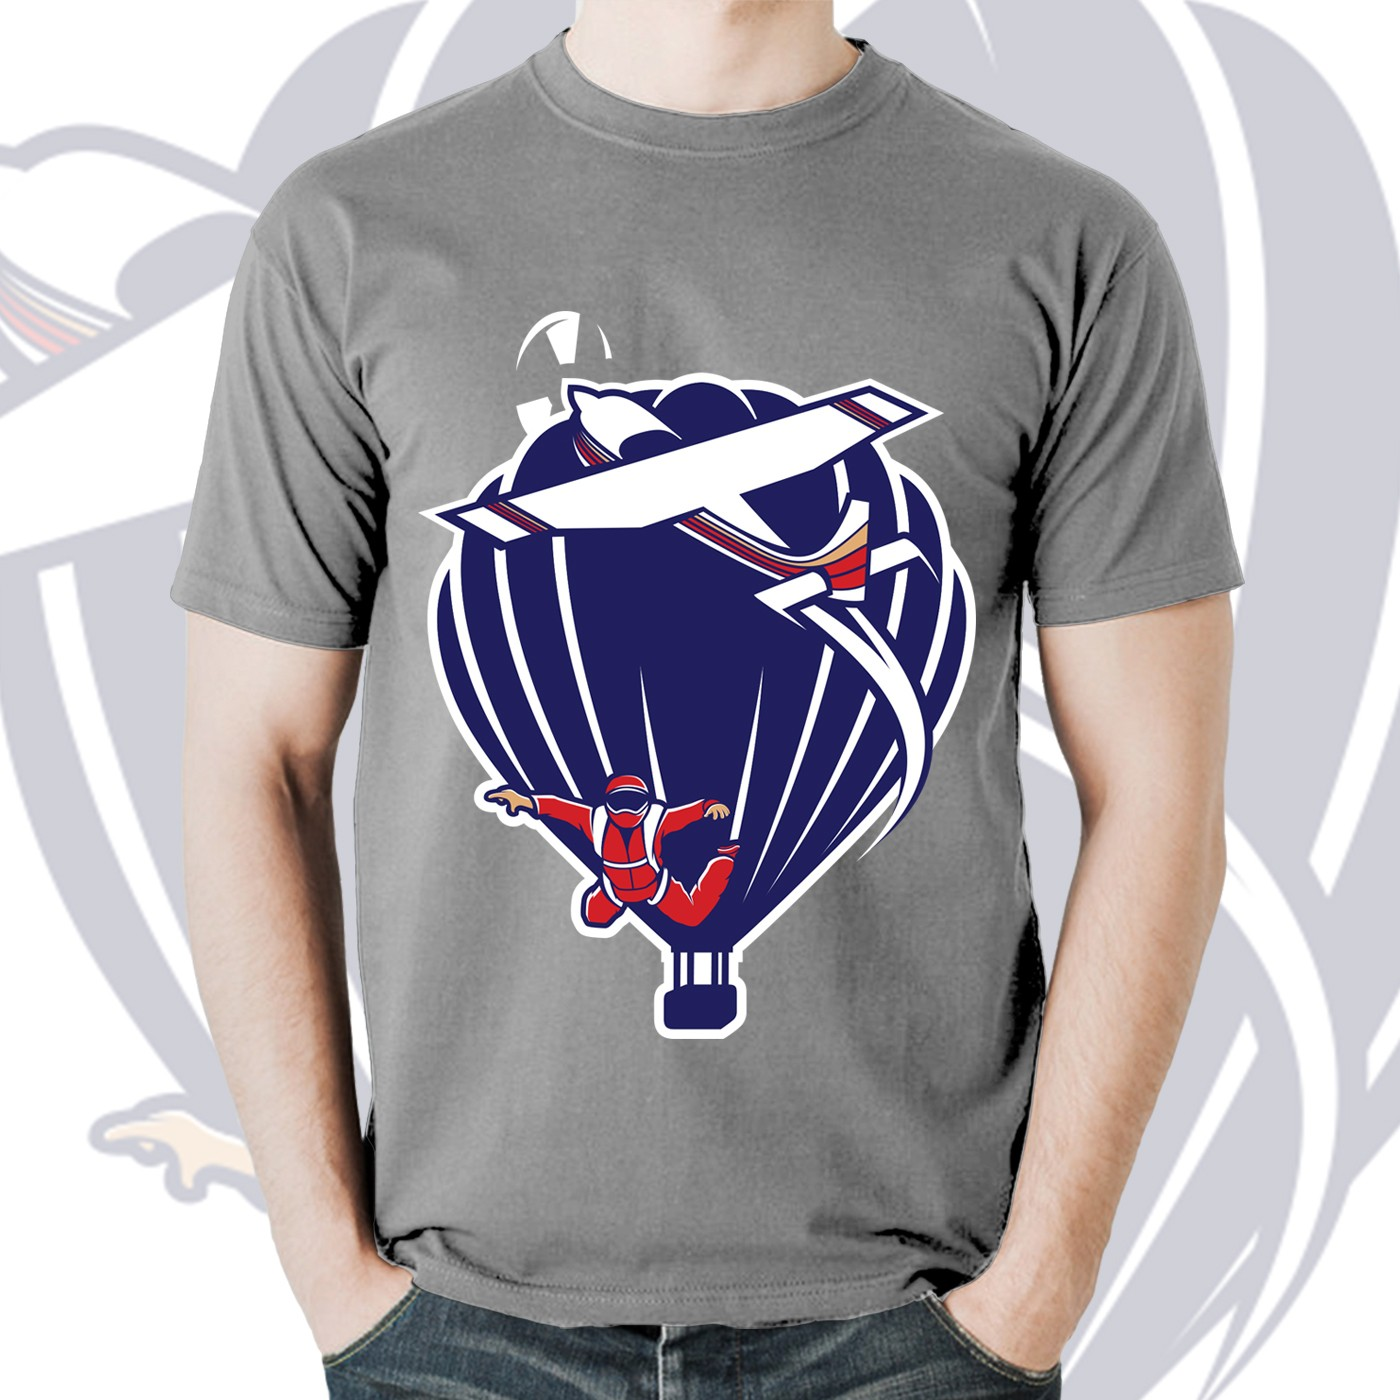 Multi-aviation logo for skydiving airplane and hot air balloon